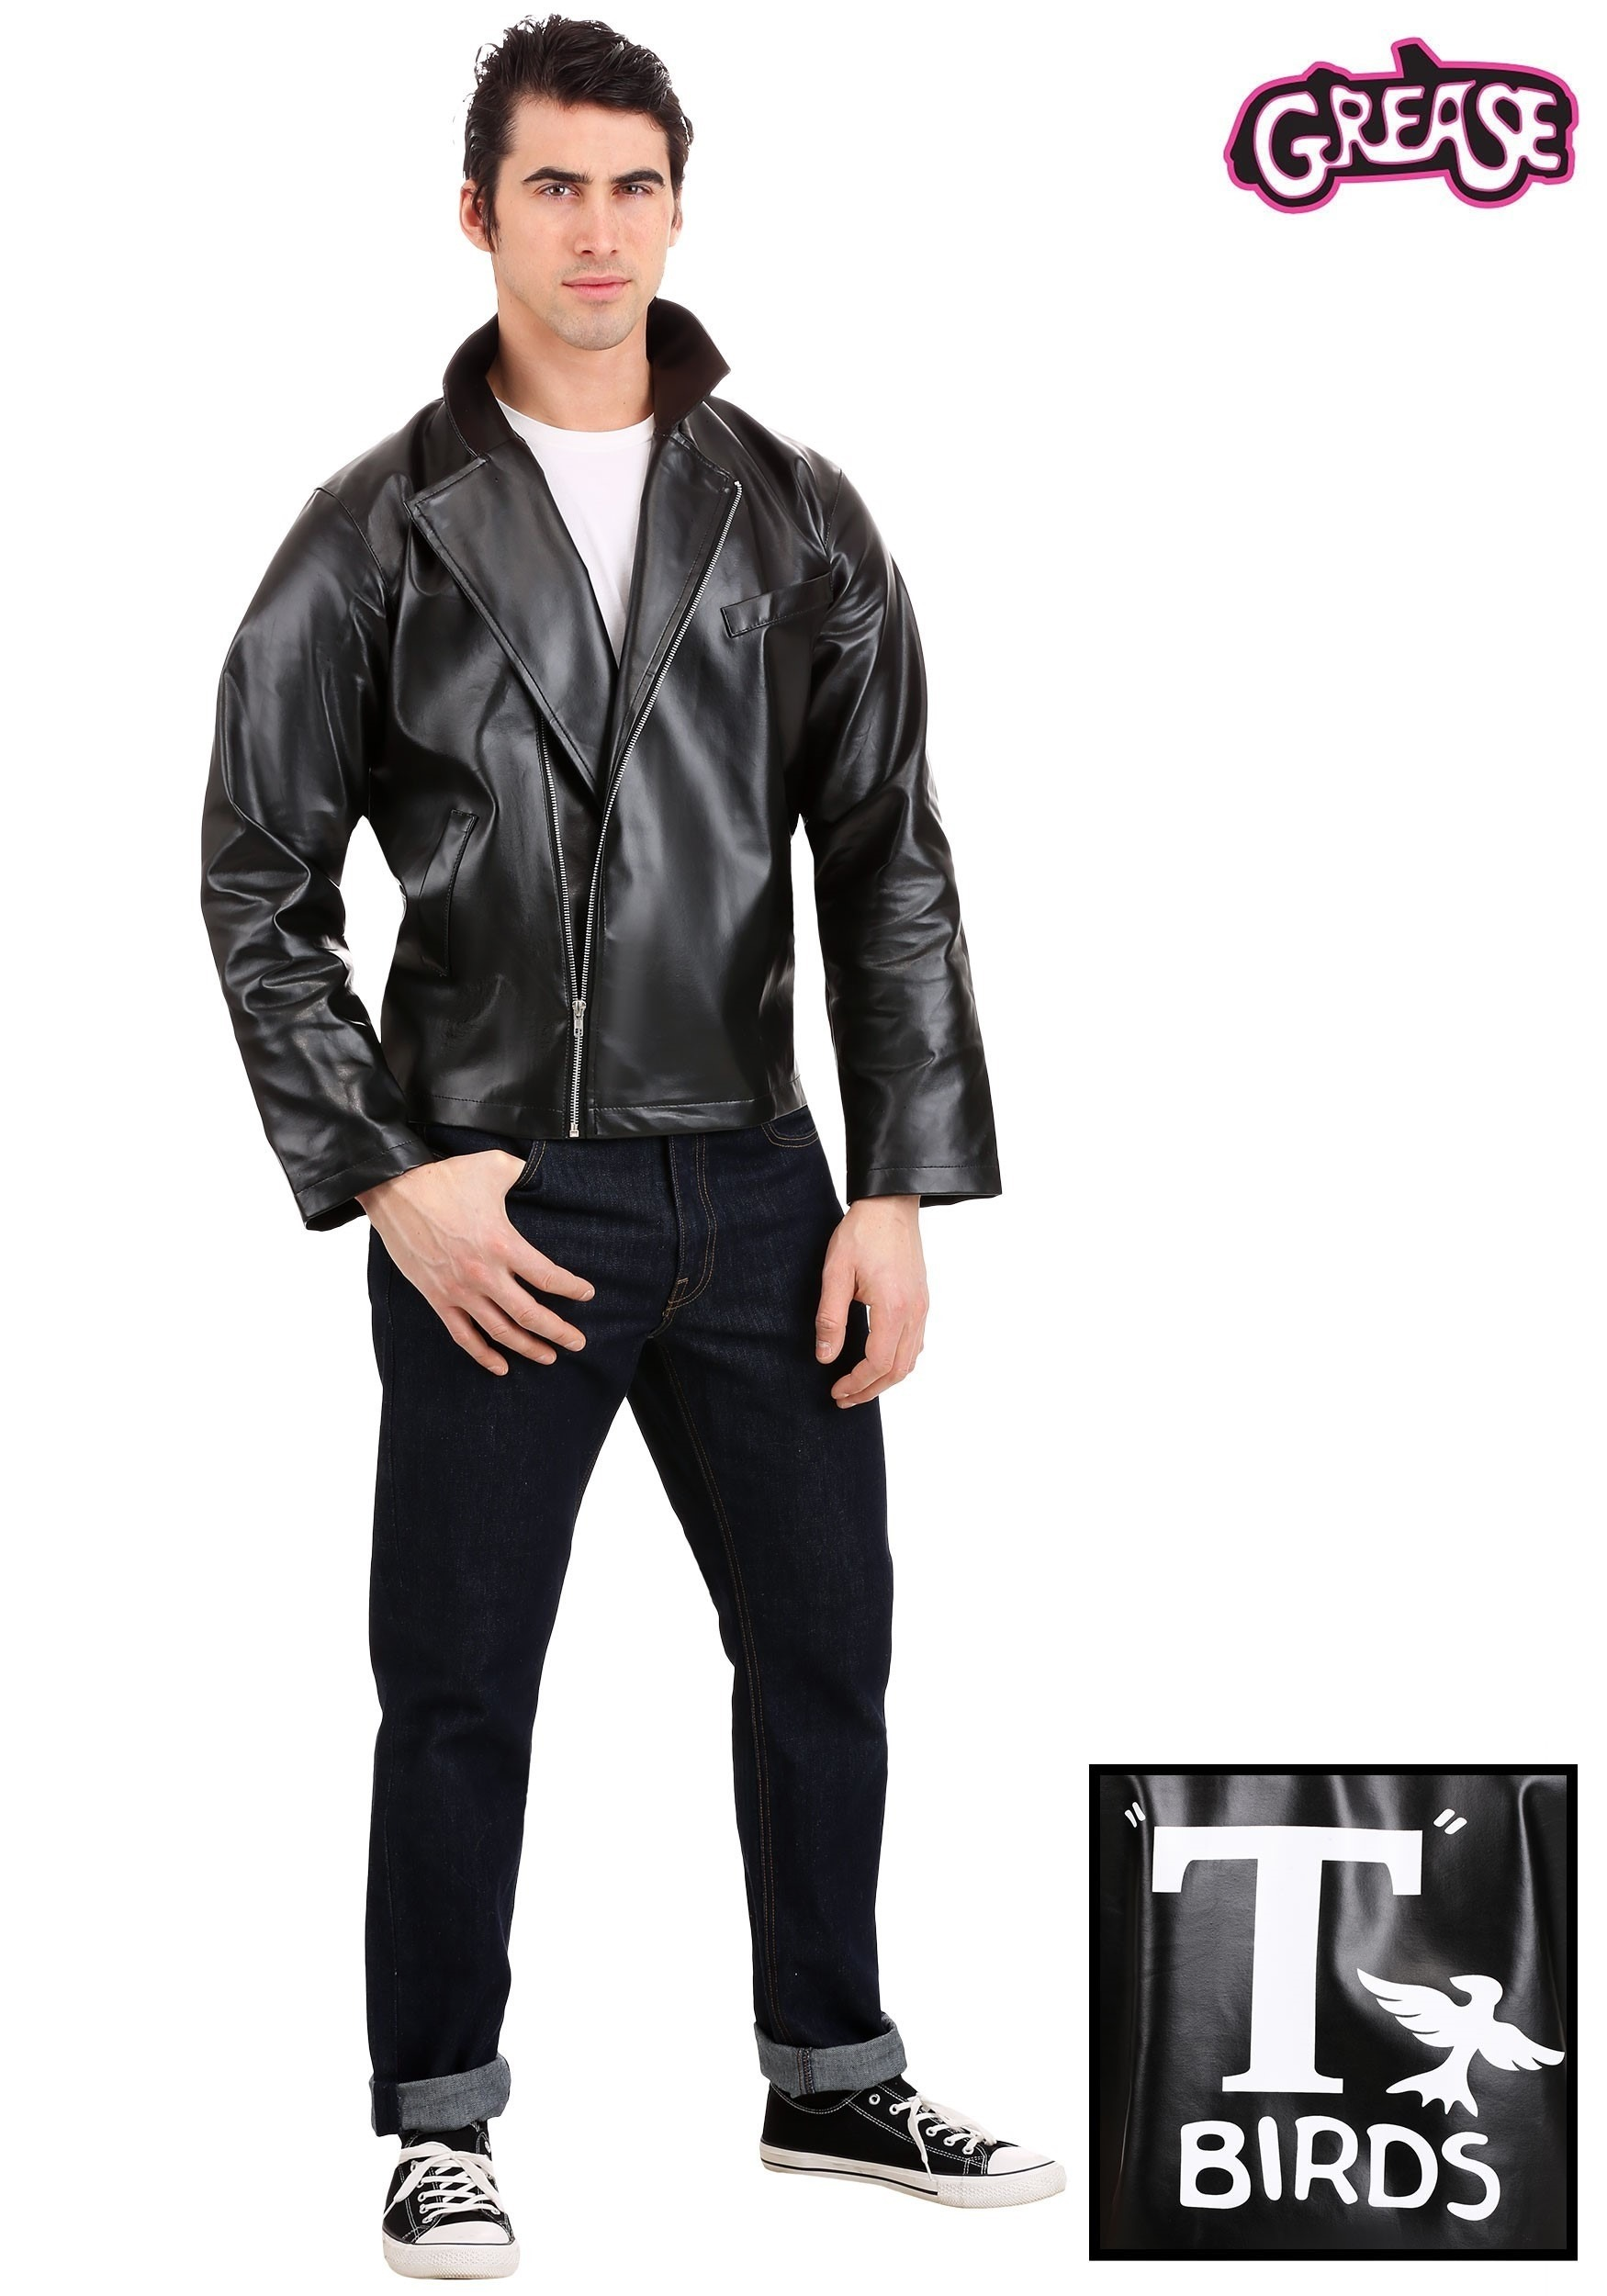 Grease T Birds Jacket Costume For Men